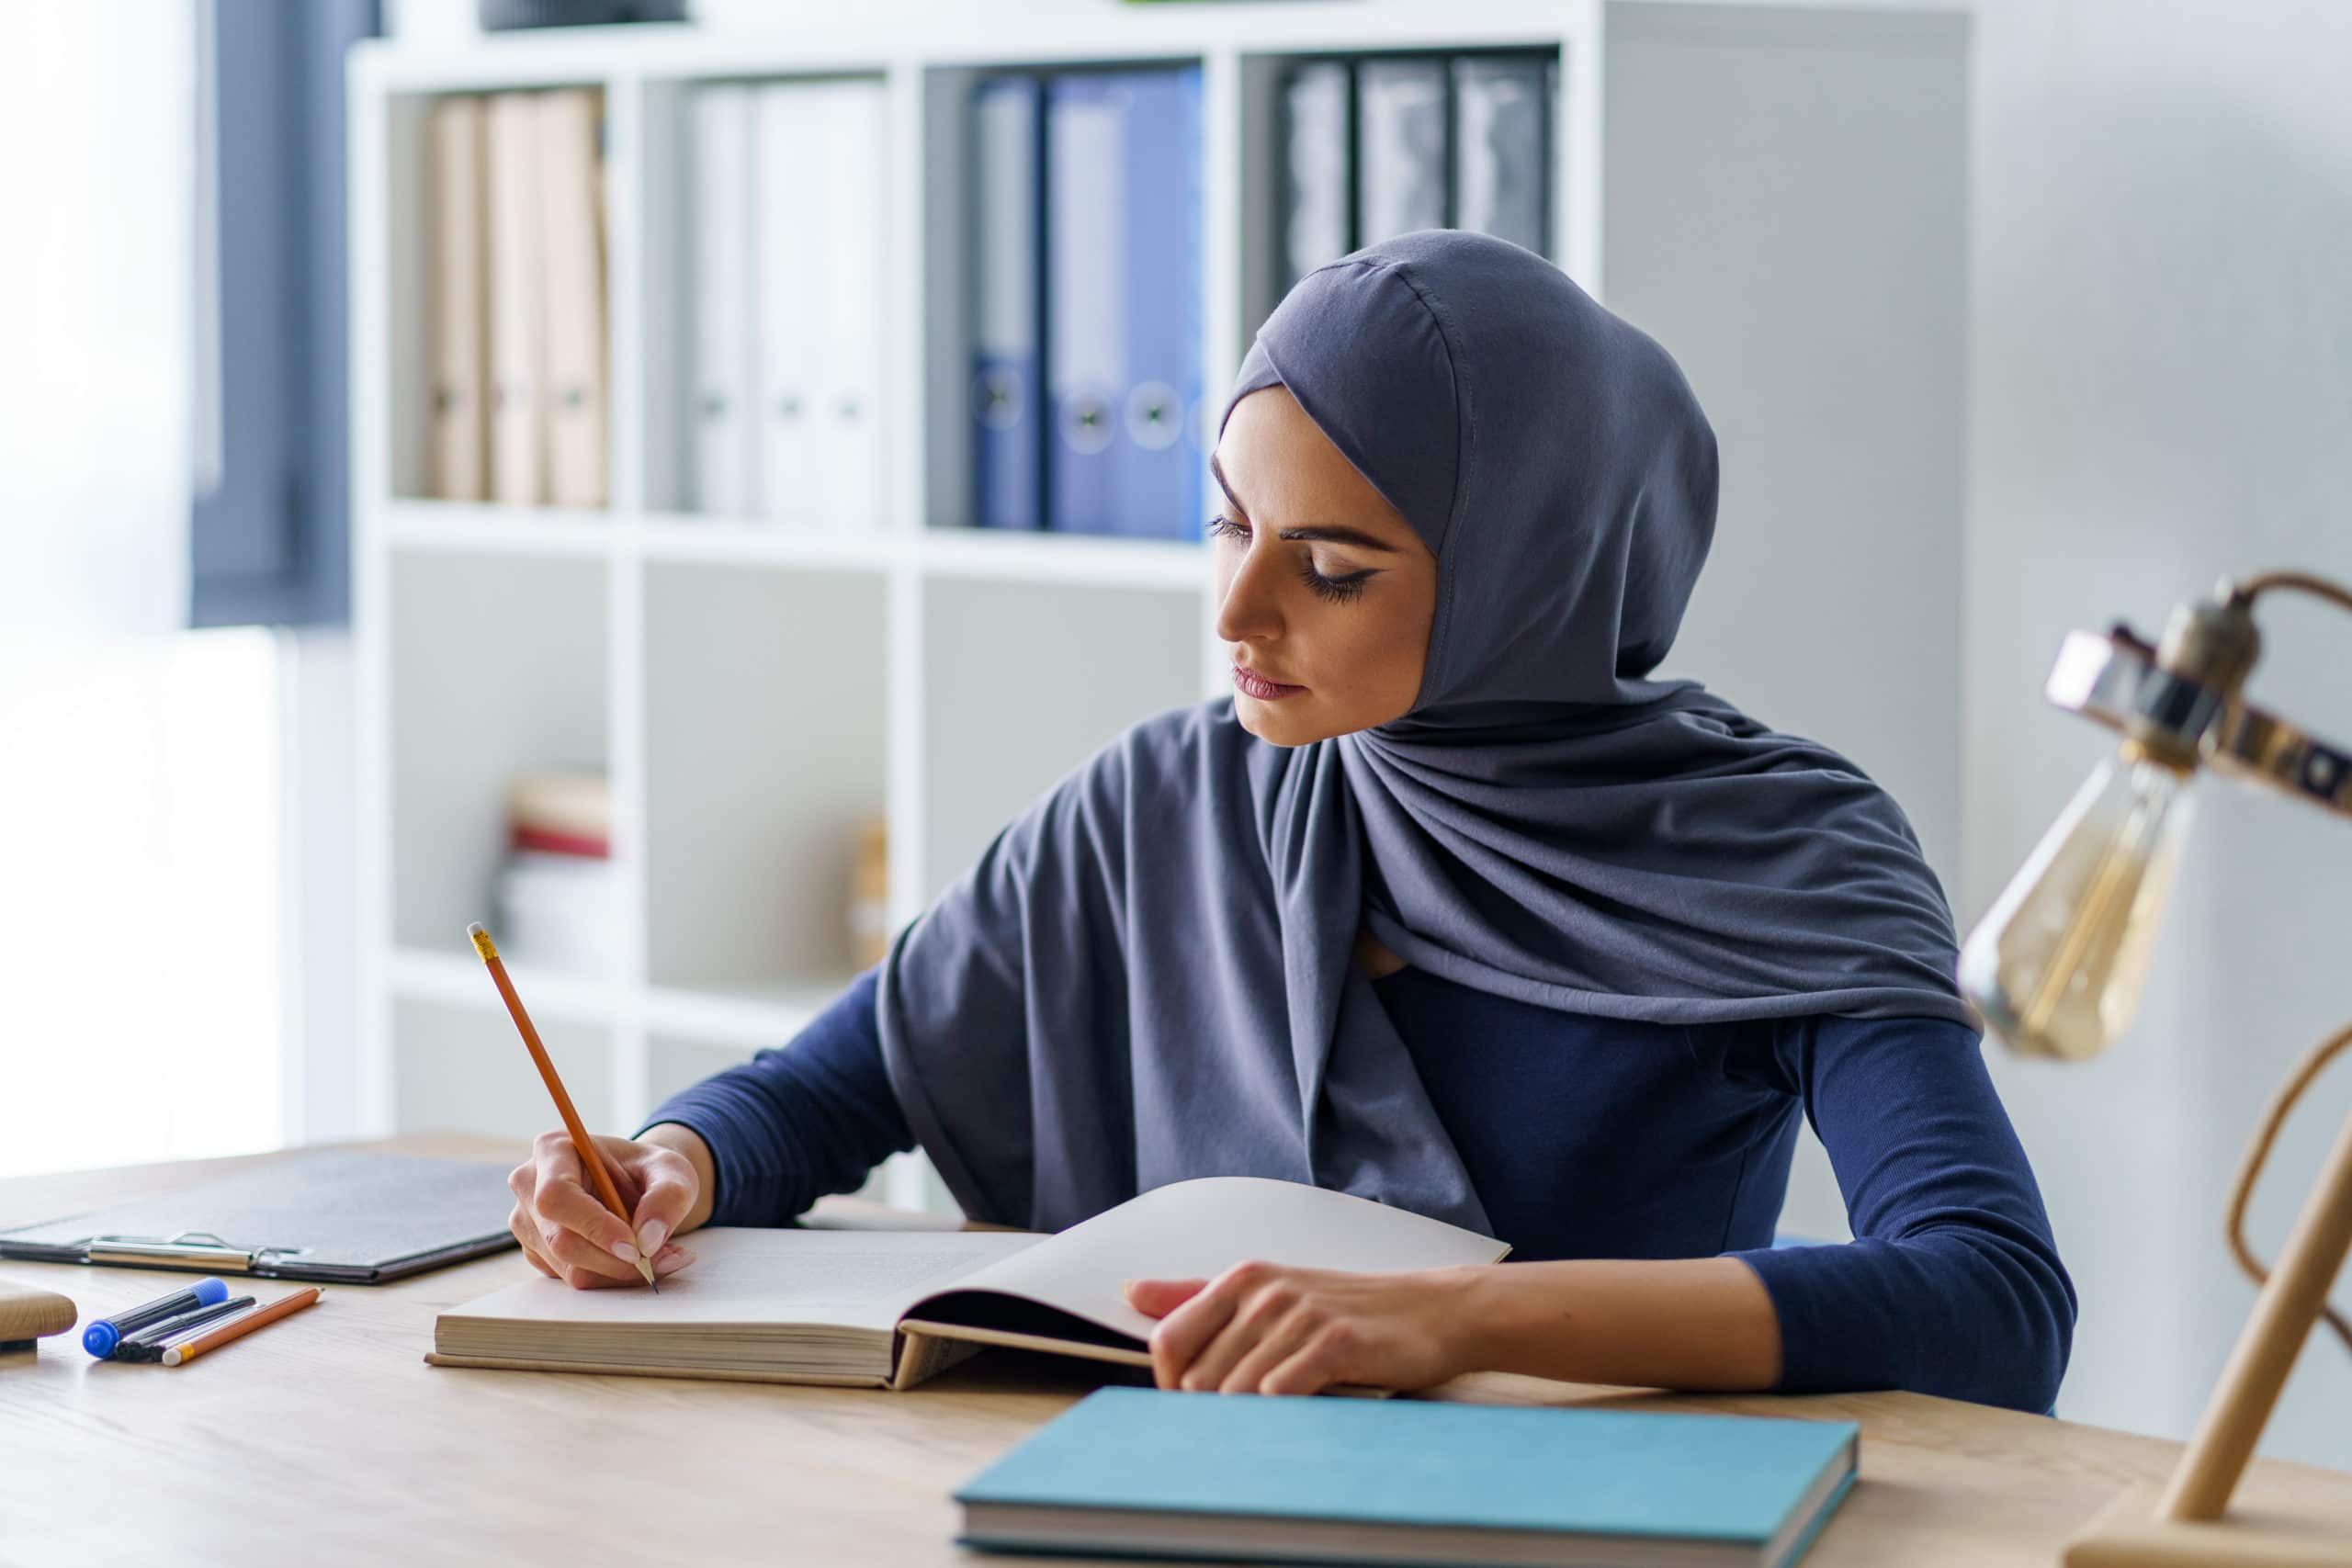 Female Muslim professor taking a note in a book, getting ready for classes. Woman fully absorbed in work.